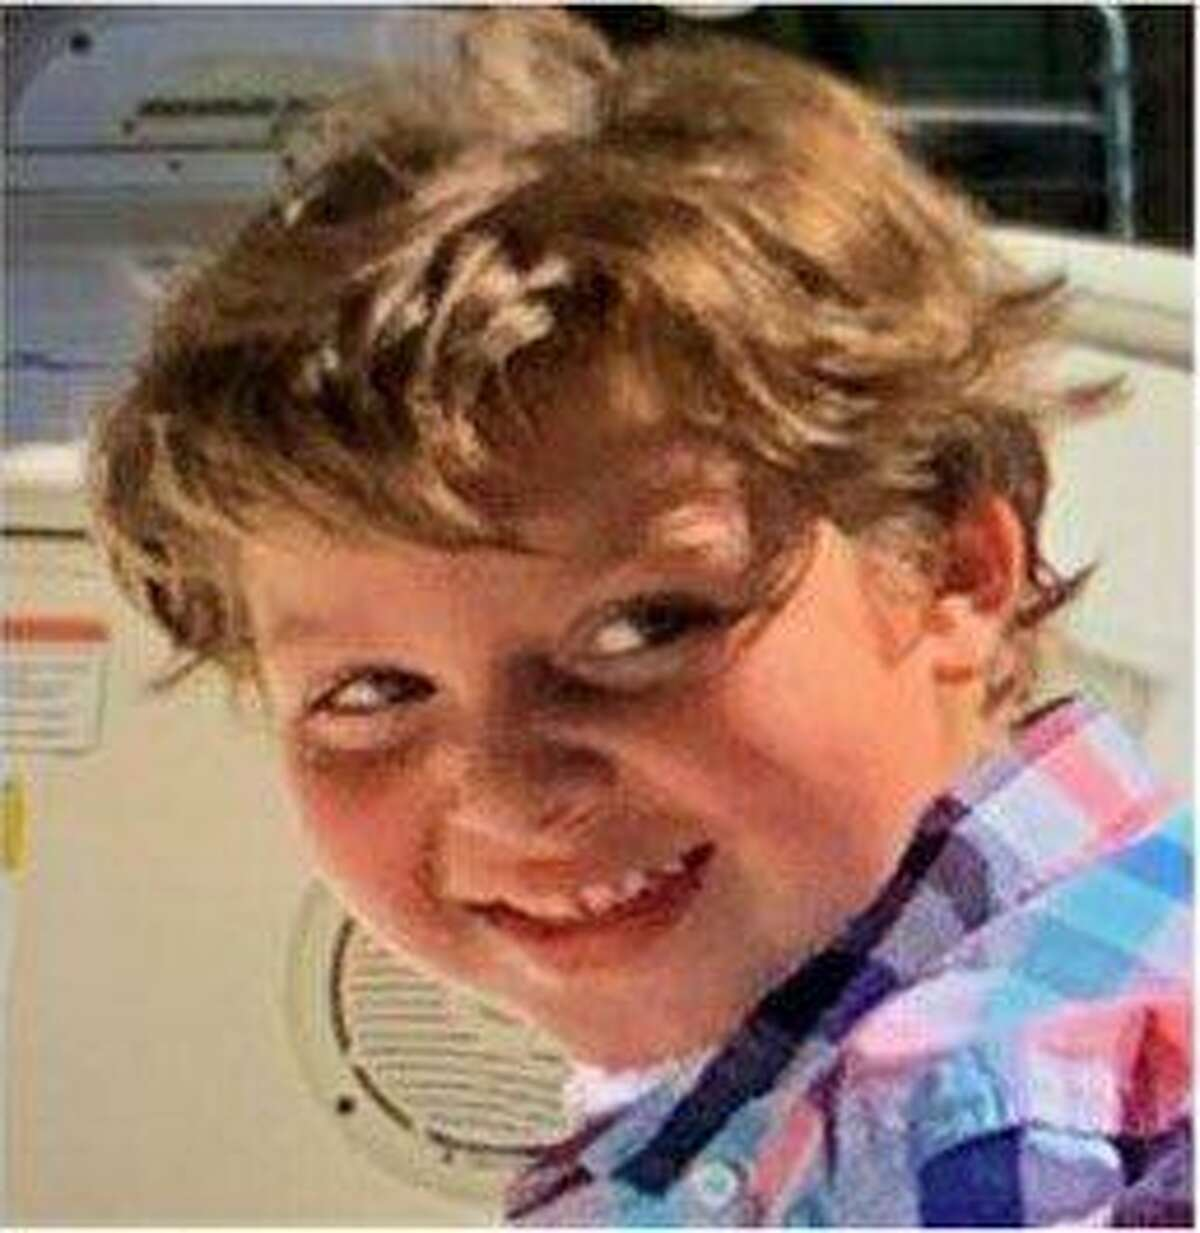 Houston police are searching for 6-year-old Samuel Olson, who was reportedly taken Thursday, May 20, 2021, from his southwest Houston home, according to his missing person report. Police are trying to verify the credibility of that report, said HPD Assistant Chief Larry Satterwhite.